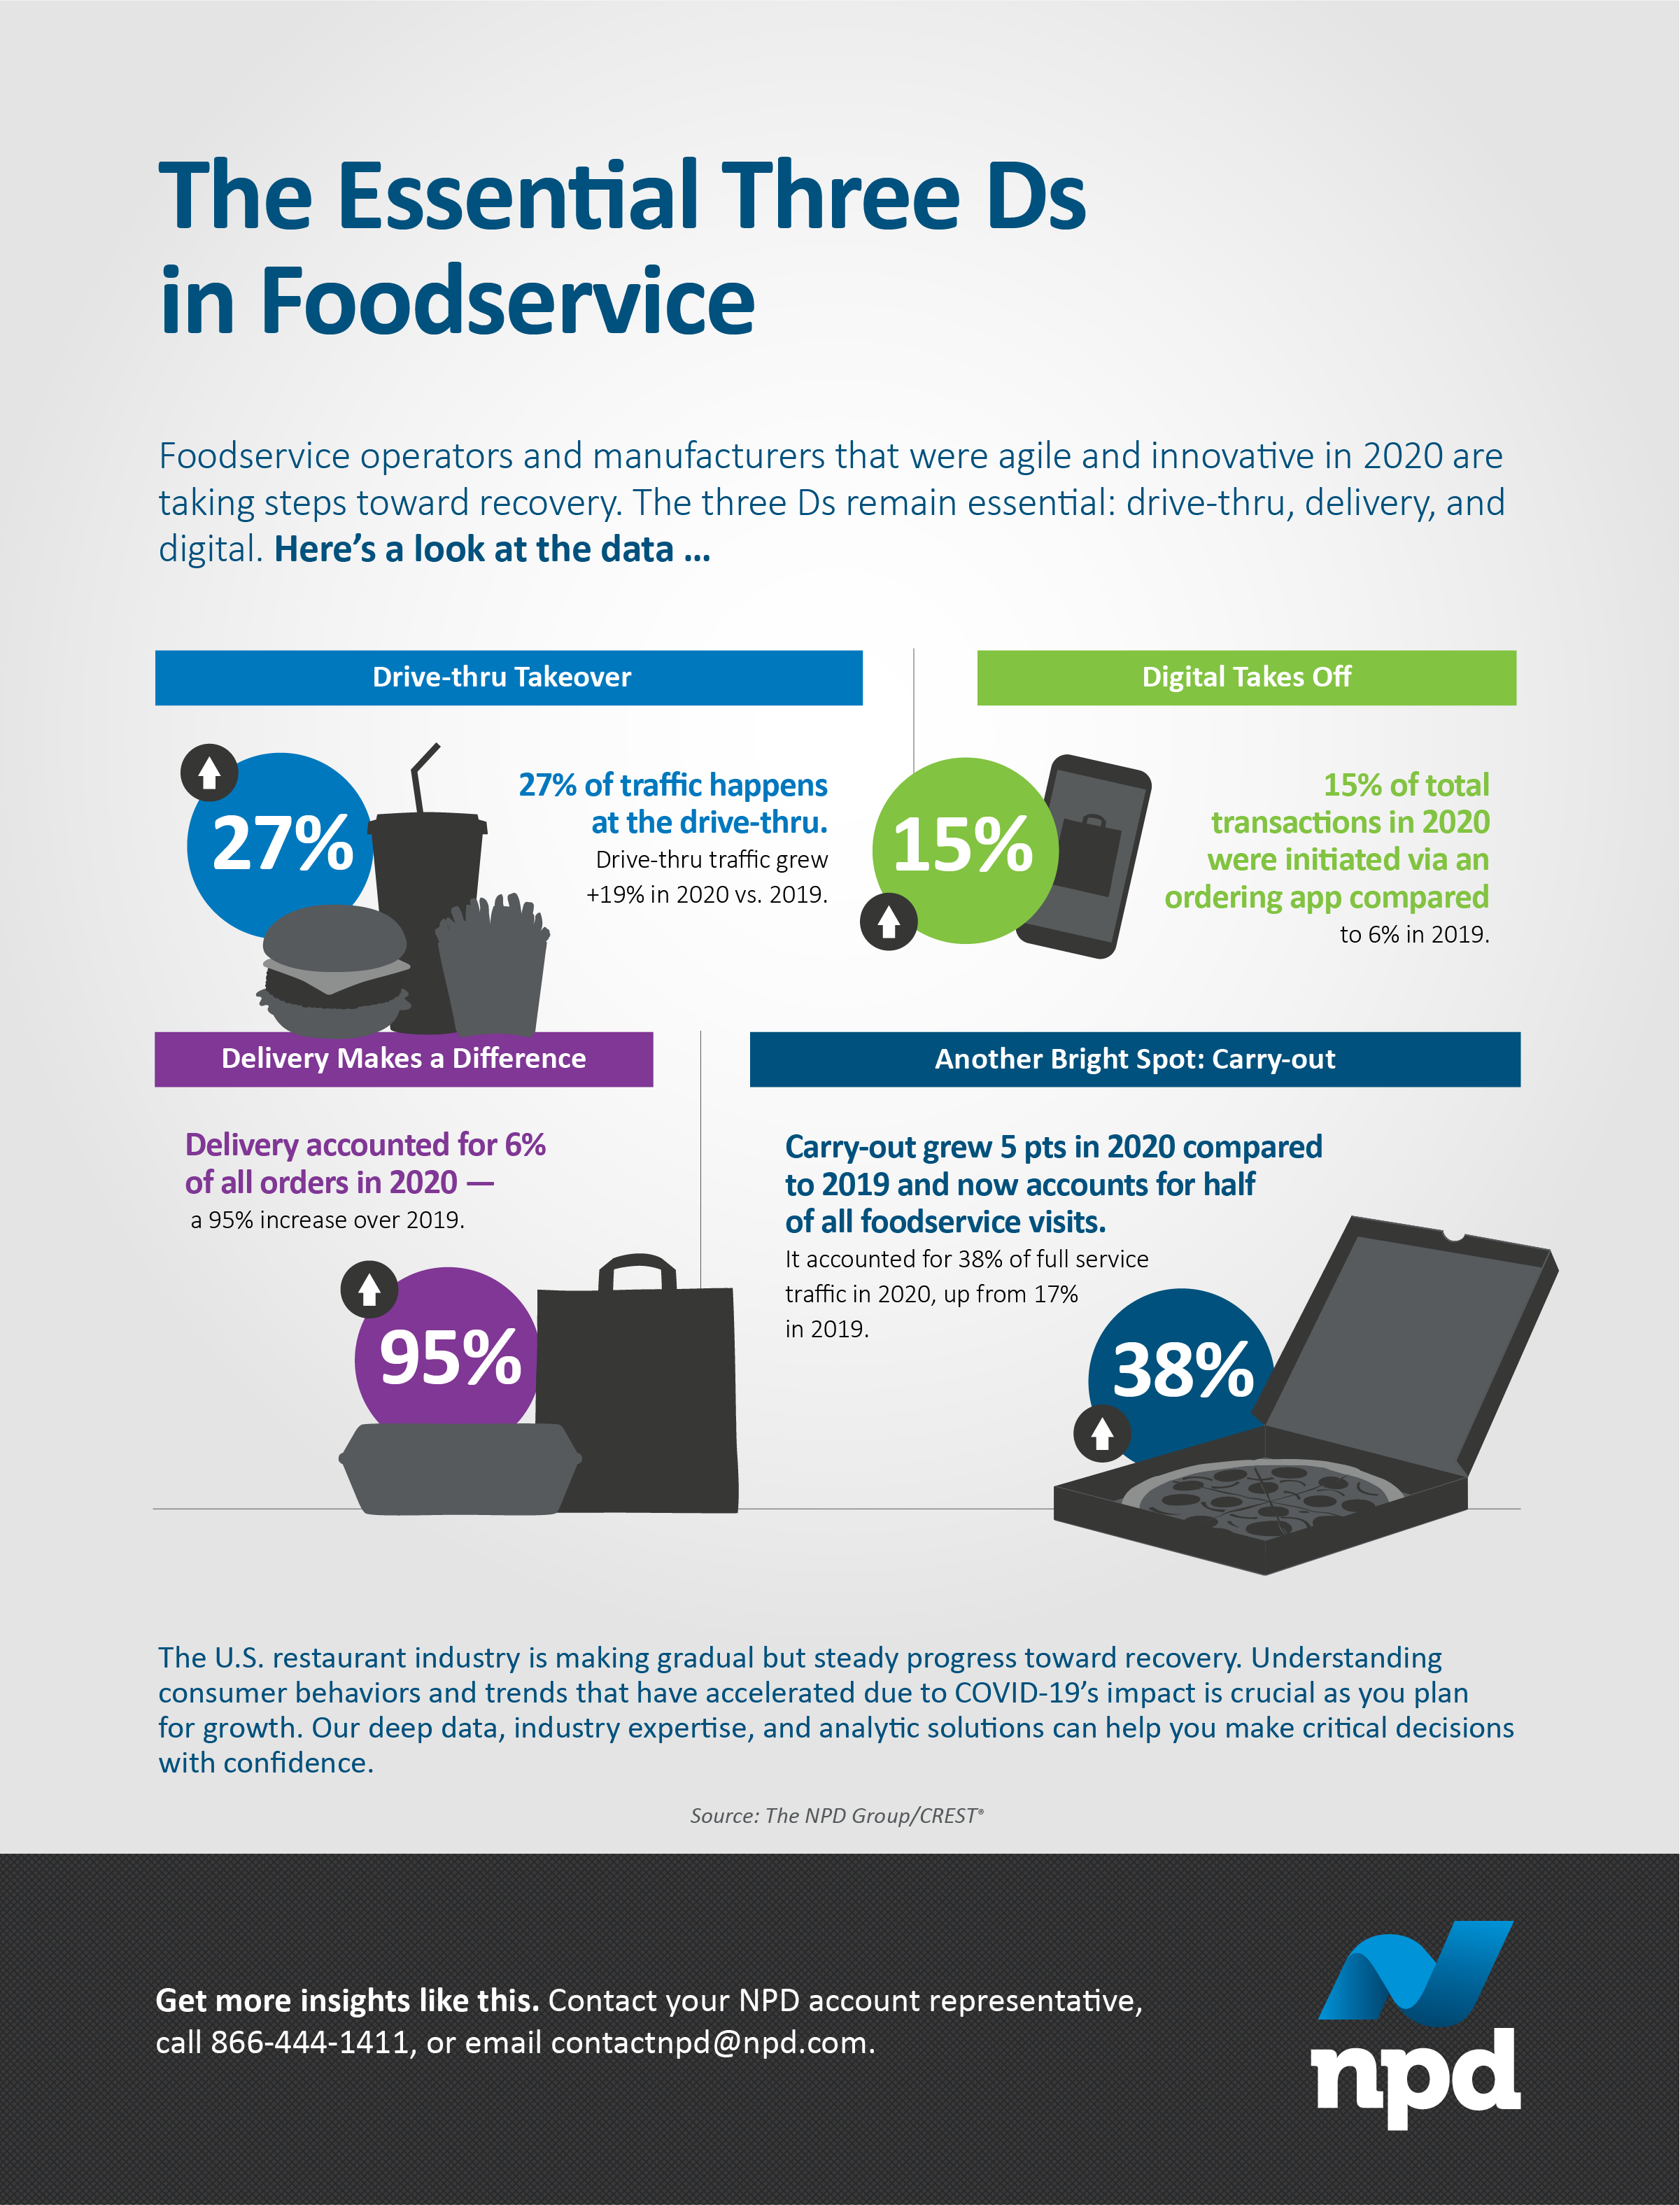 Foodservice operators and manufacturers that were agile and innovative in 2020 are taking steps toward recovery. The three Ds remain essential: drive-thru, delivery, and digital.